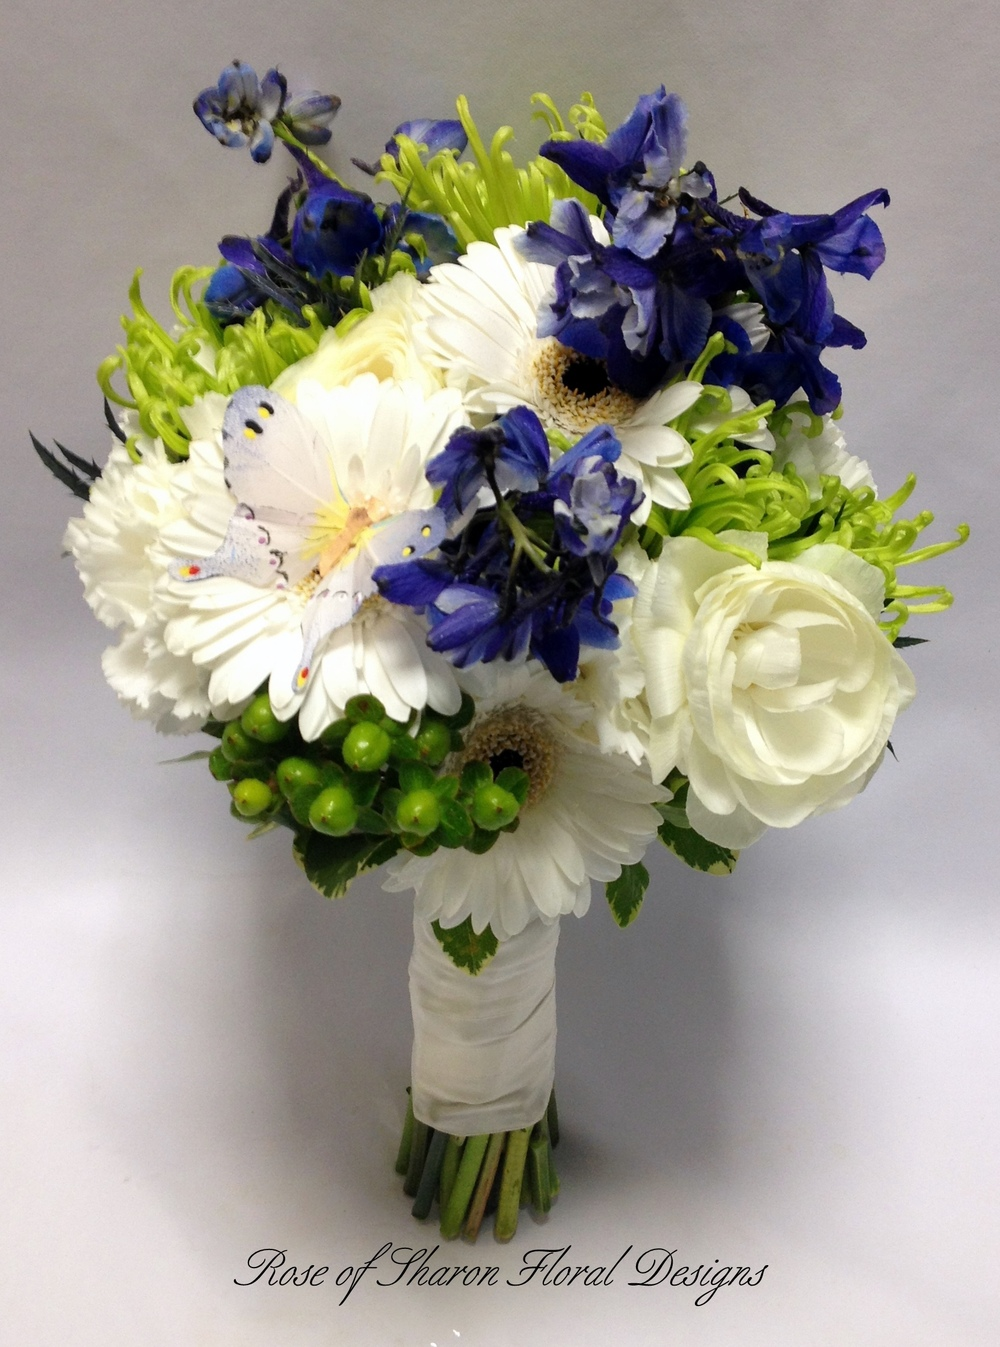 Blue, Green and Ivory Hand-Tied Bouquet featuring Daisies, Mums, Delphinium and Hypericum Berries. Rose of Sharon Floral Designs